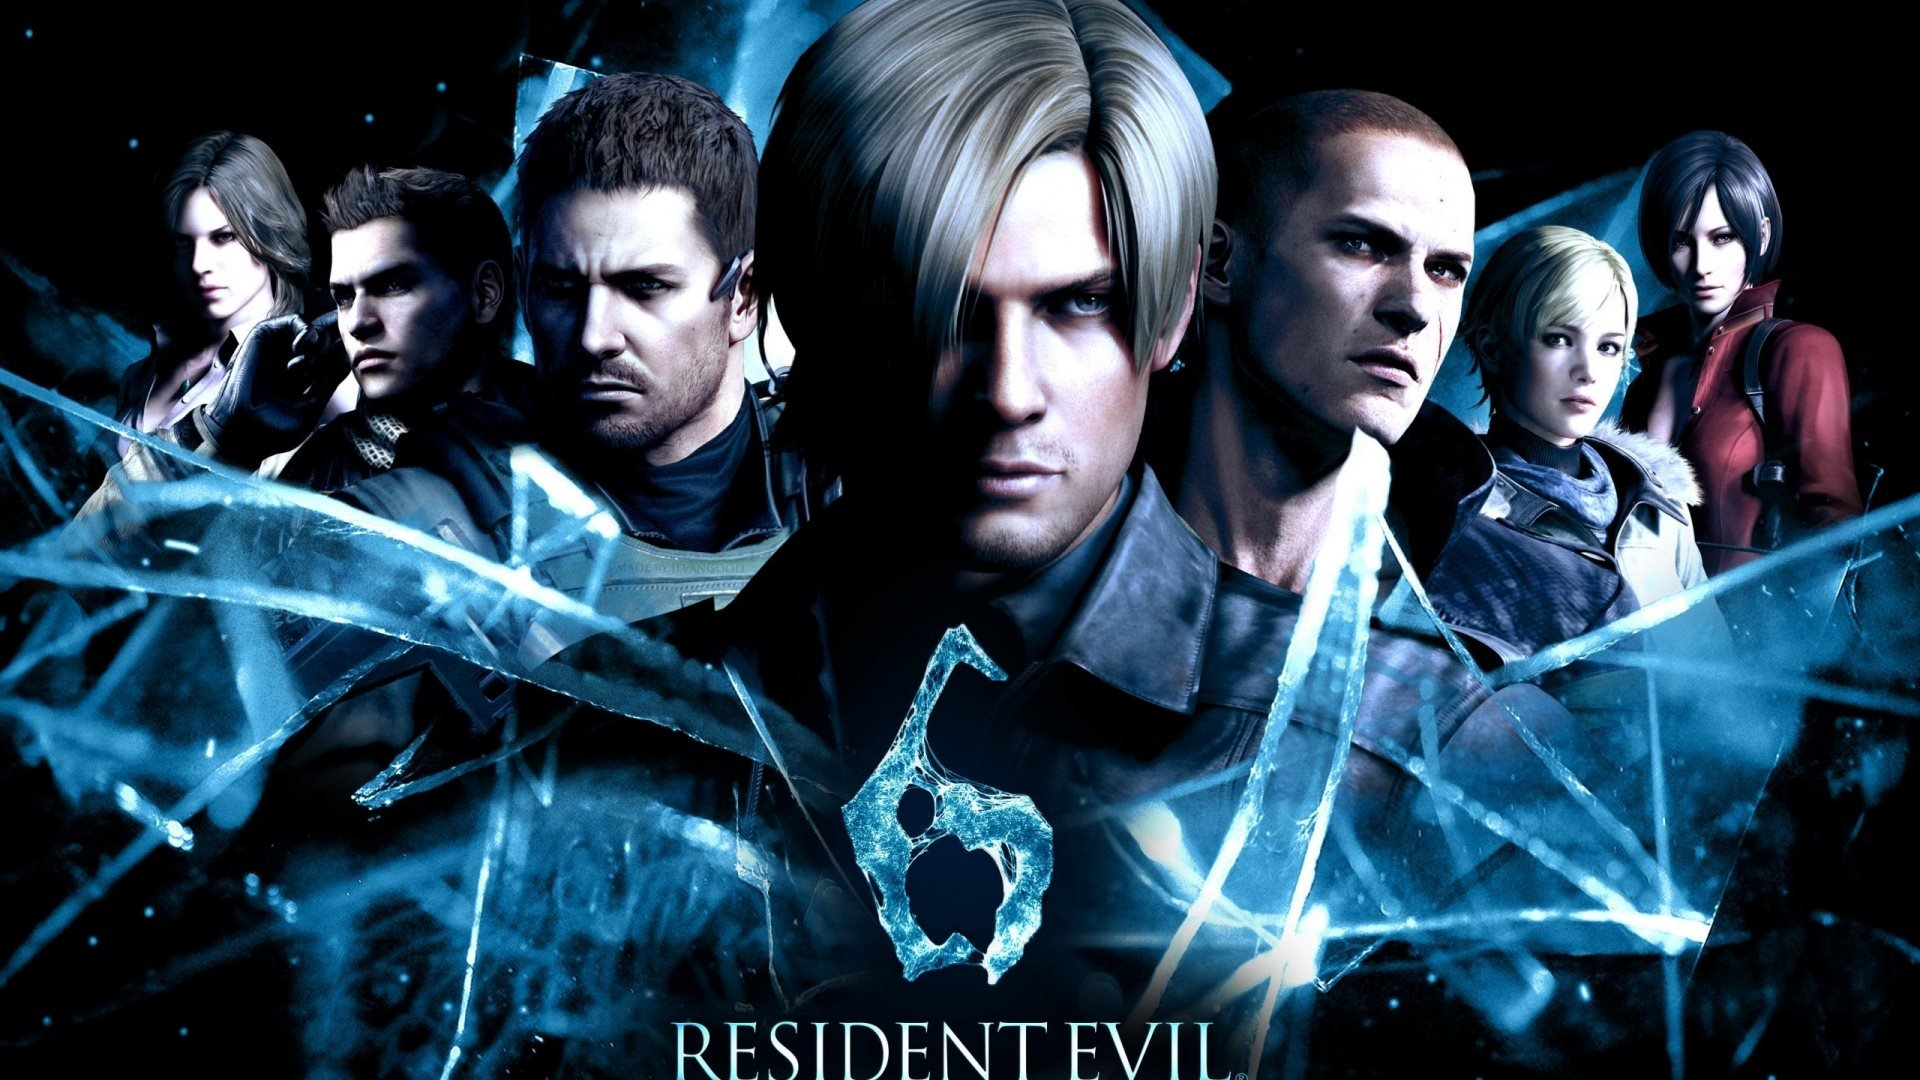 Resident Evil 6 Wallpapers 1920x1080 Full Hd 1080p Desktop